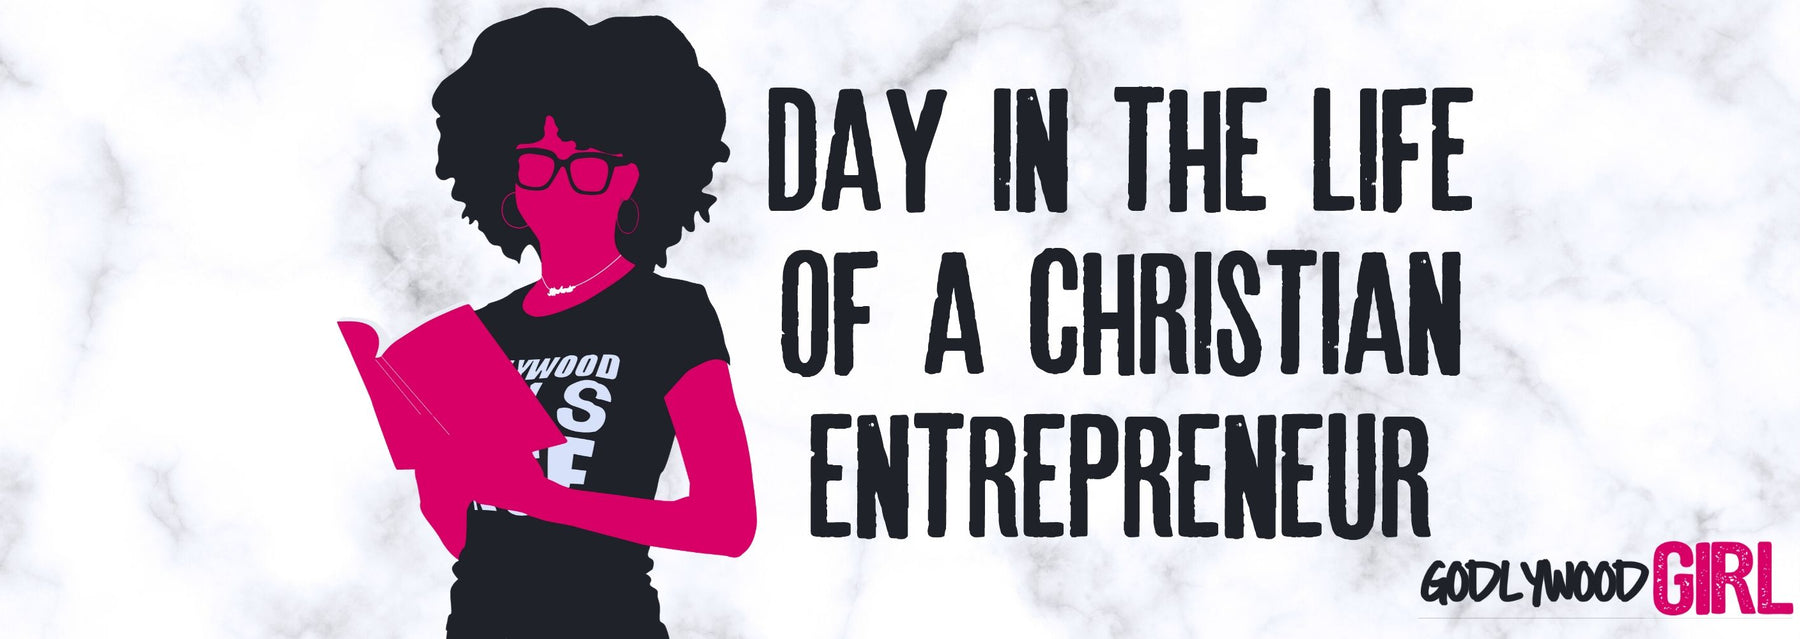 ENTREPRENEUR LIFE VLOG | DAY IN A LIFE OF A CHRISTIAN ENTREPRENEUR (Godlywood Girl Vlog #094) GGTV